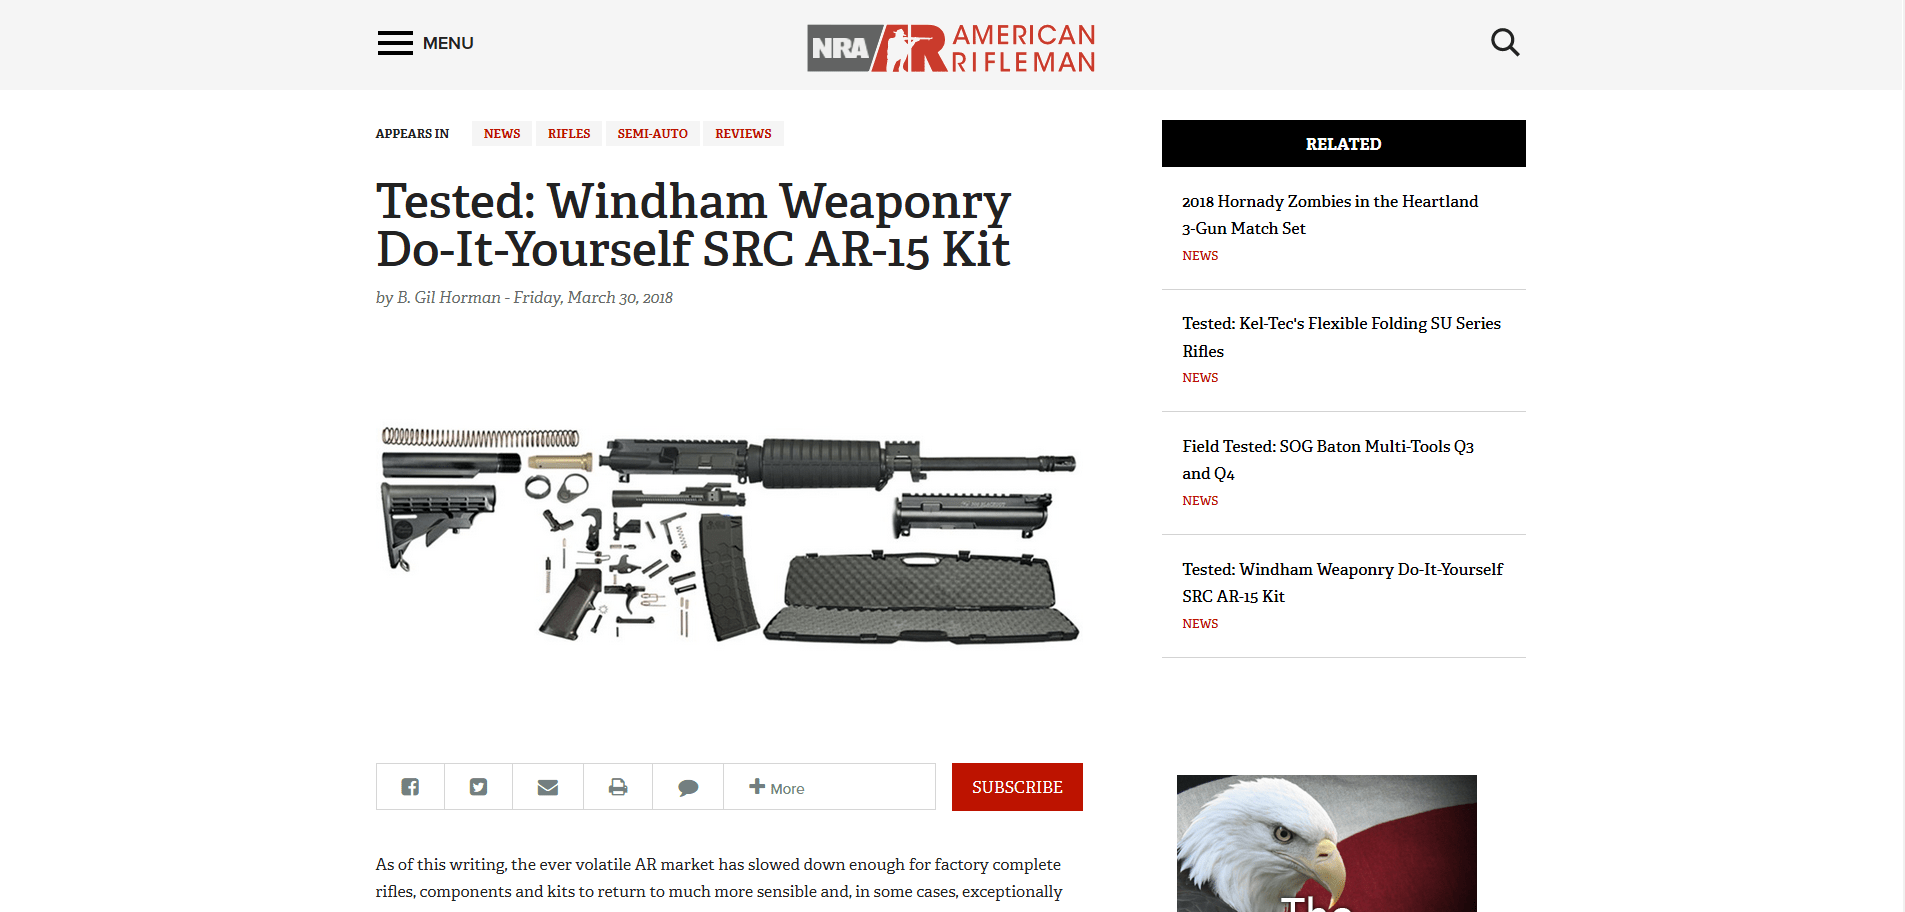 Tested windham weaponry do it yourself src ar 15 kit windham view larger image solutioingenieria Choice Image